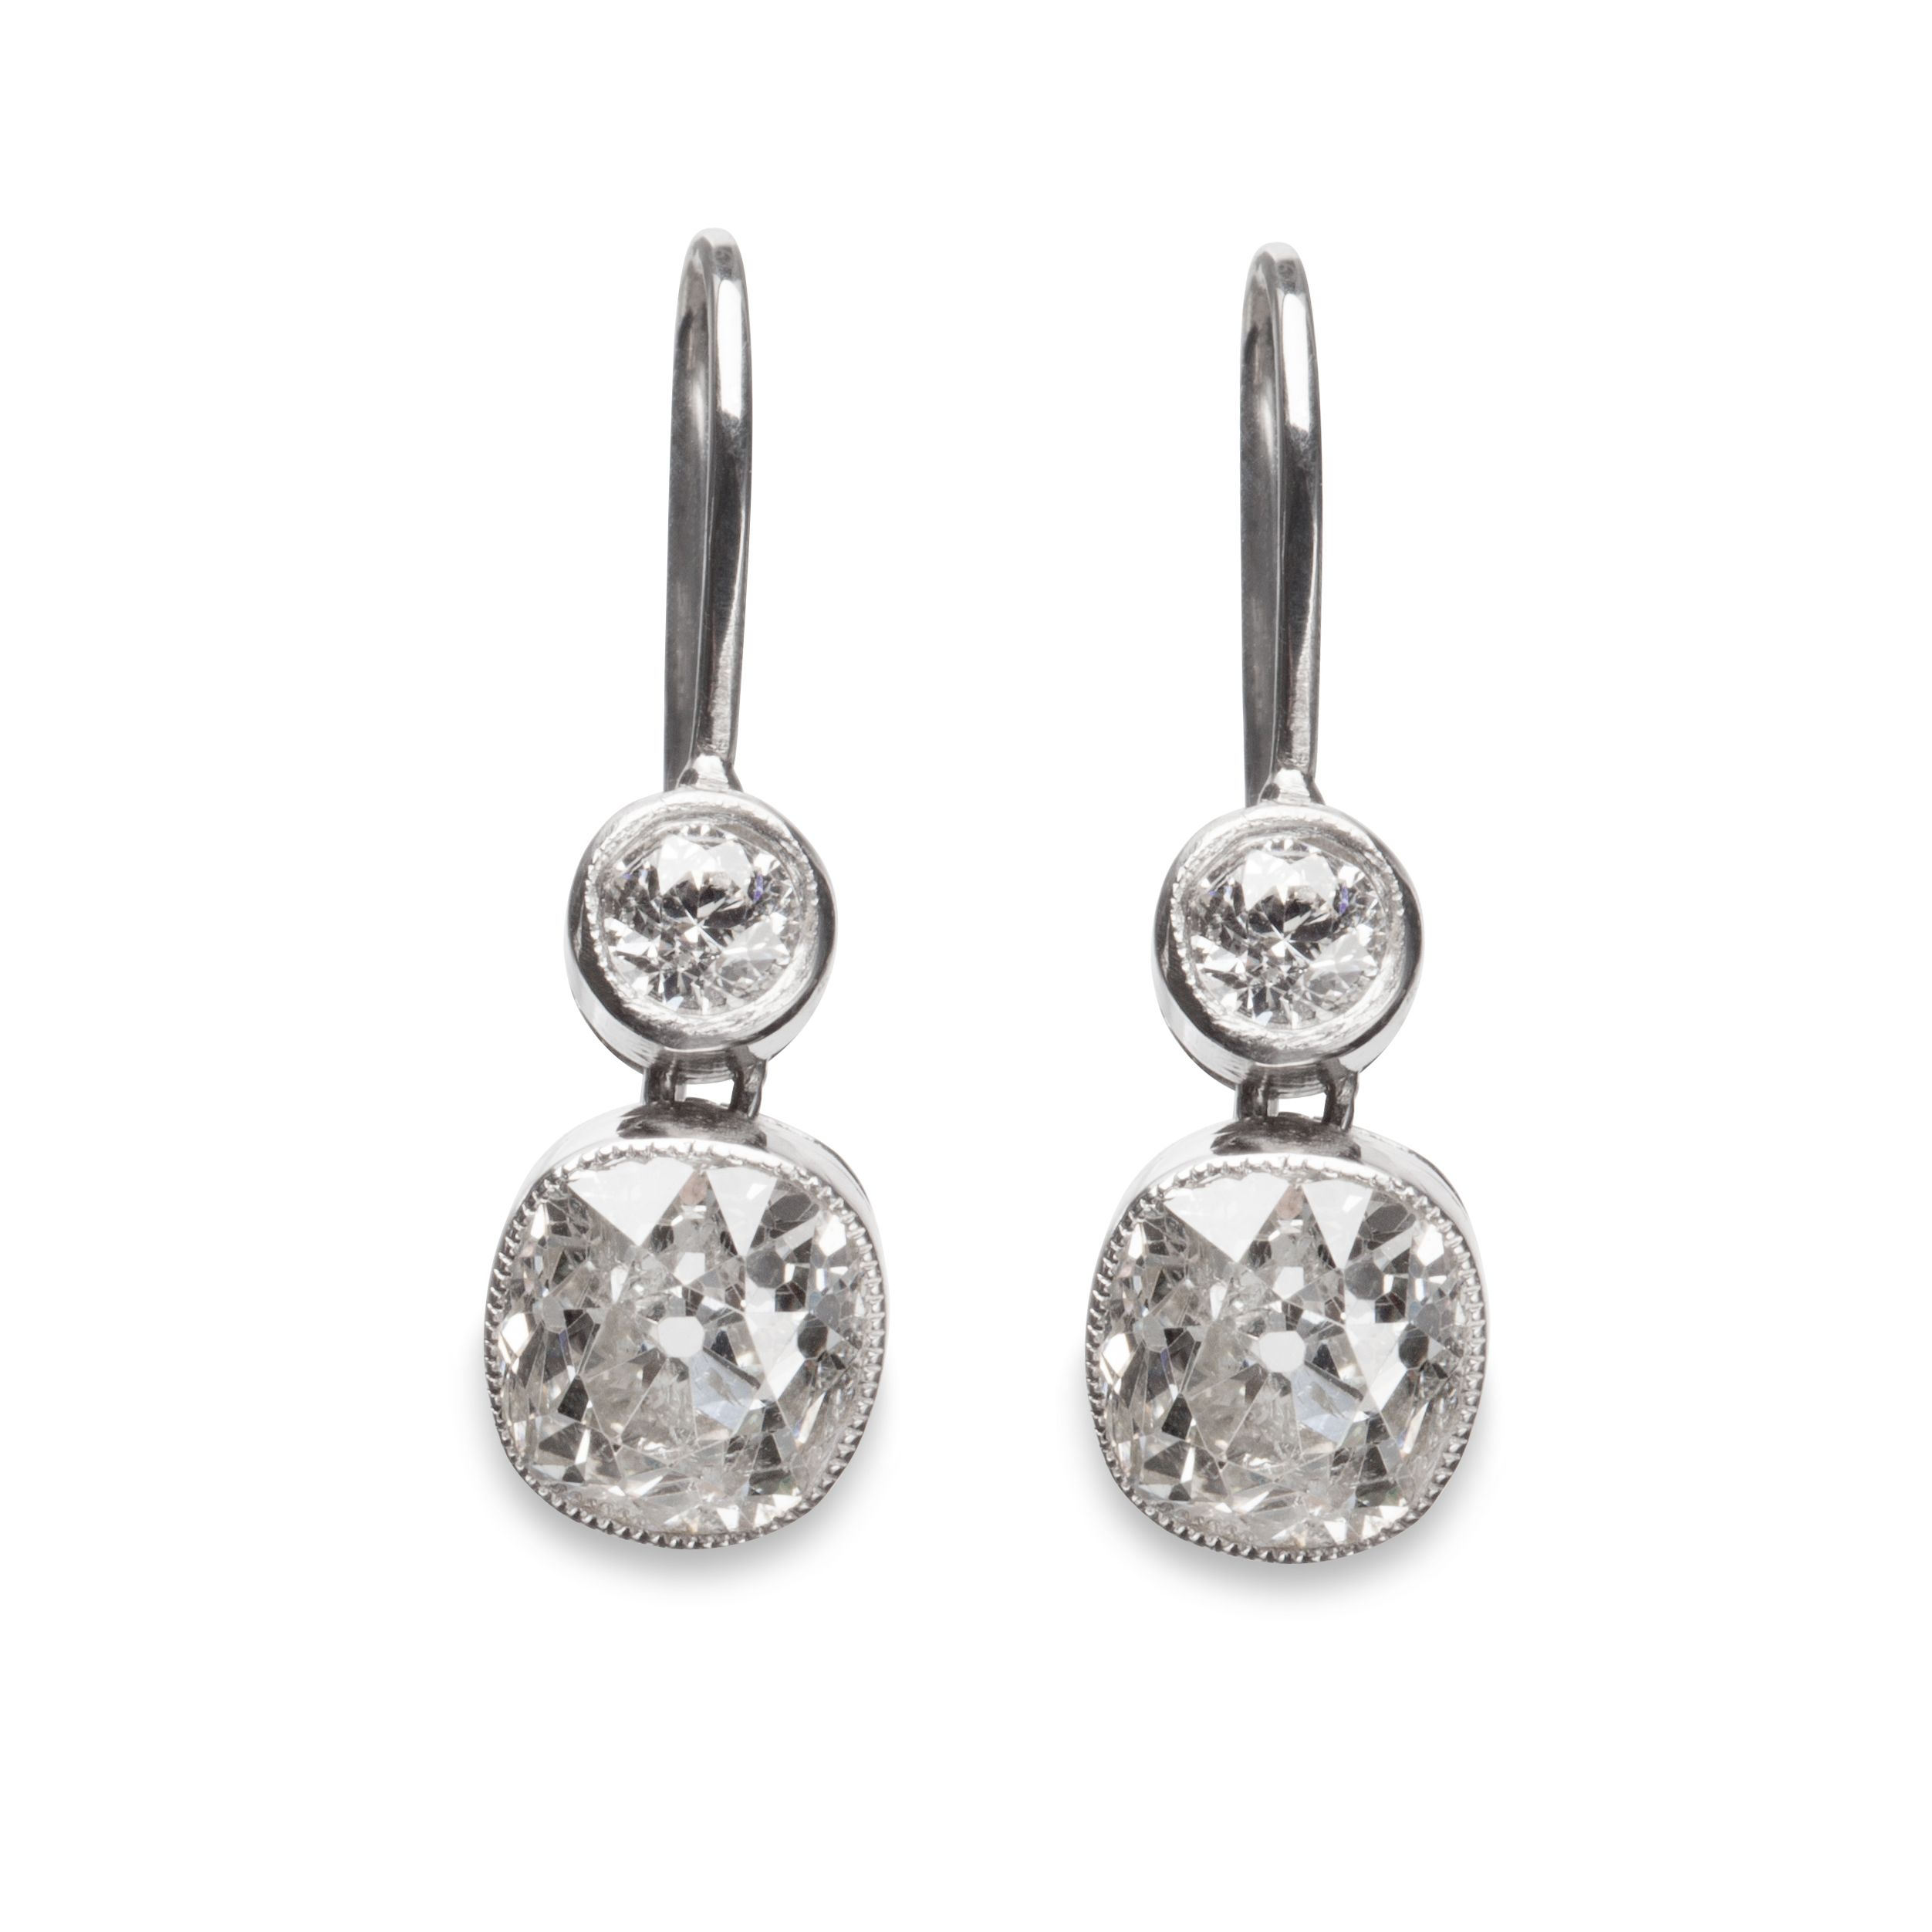 Two stone diamond earrings on a french wire